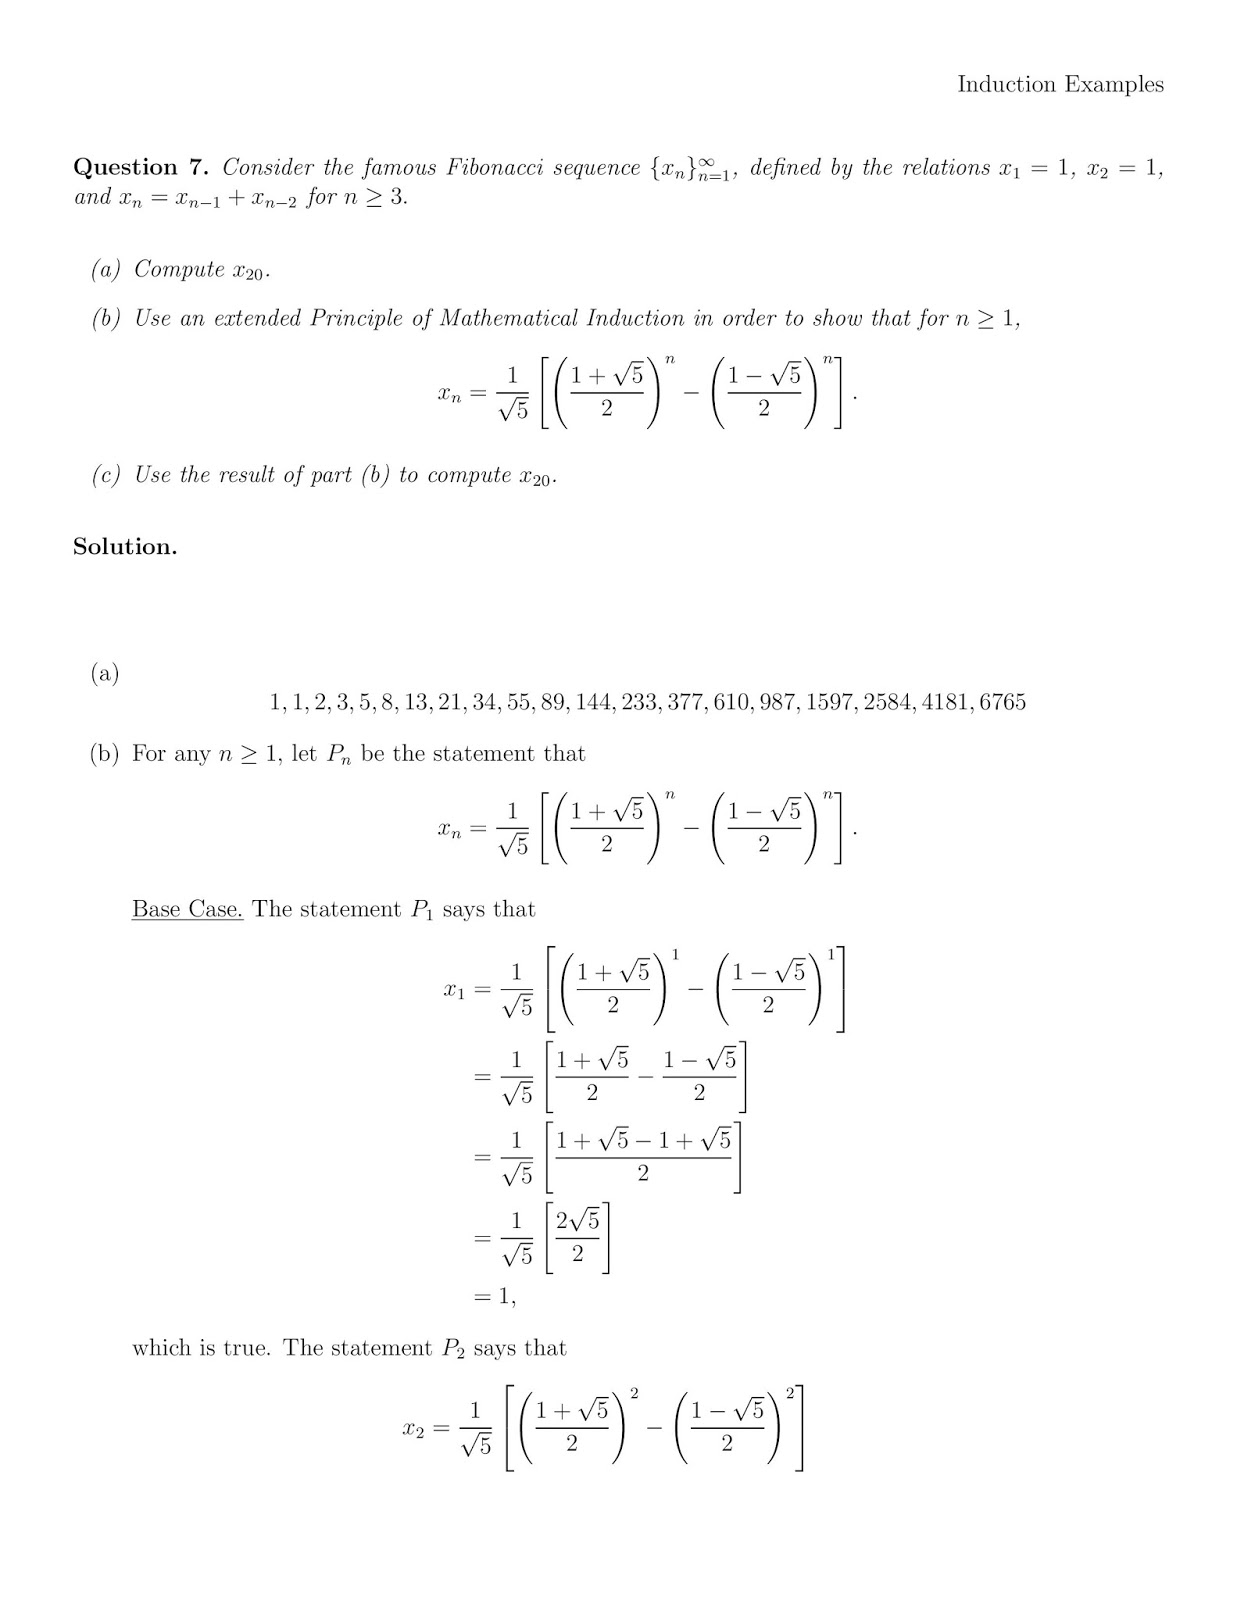 Iit Jee Physics By Kumar Institute Kumars Of Electricity And Magnetism Proprofs Quiz Hlo Friends Here Is Todays Study Material Solved Problems Mathematical Induction